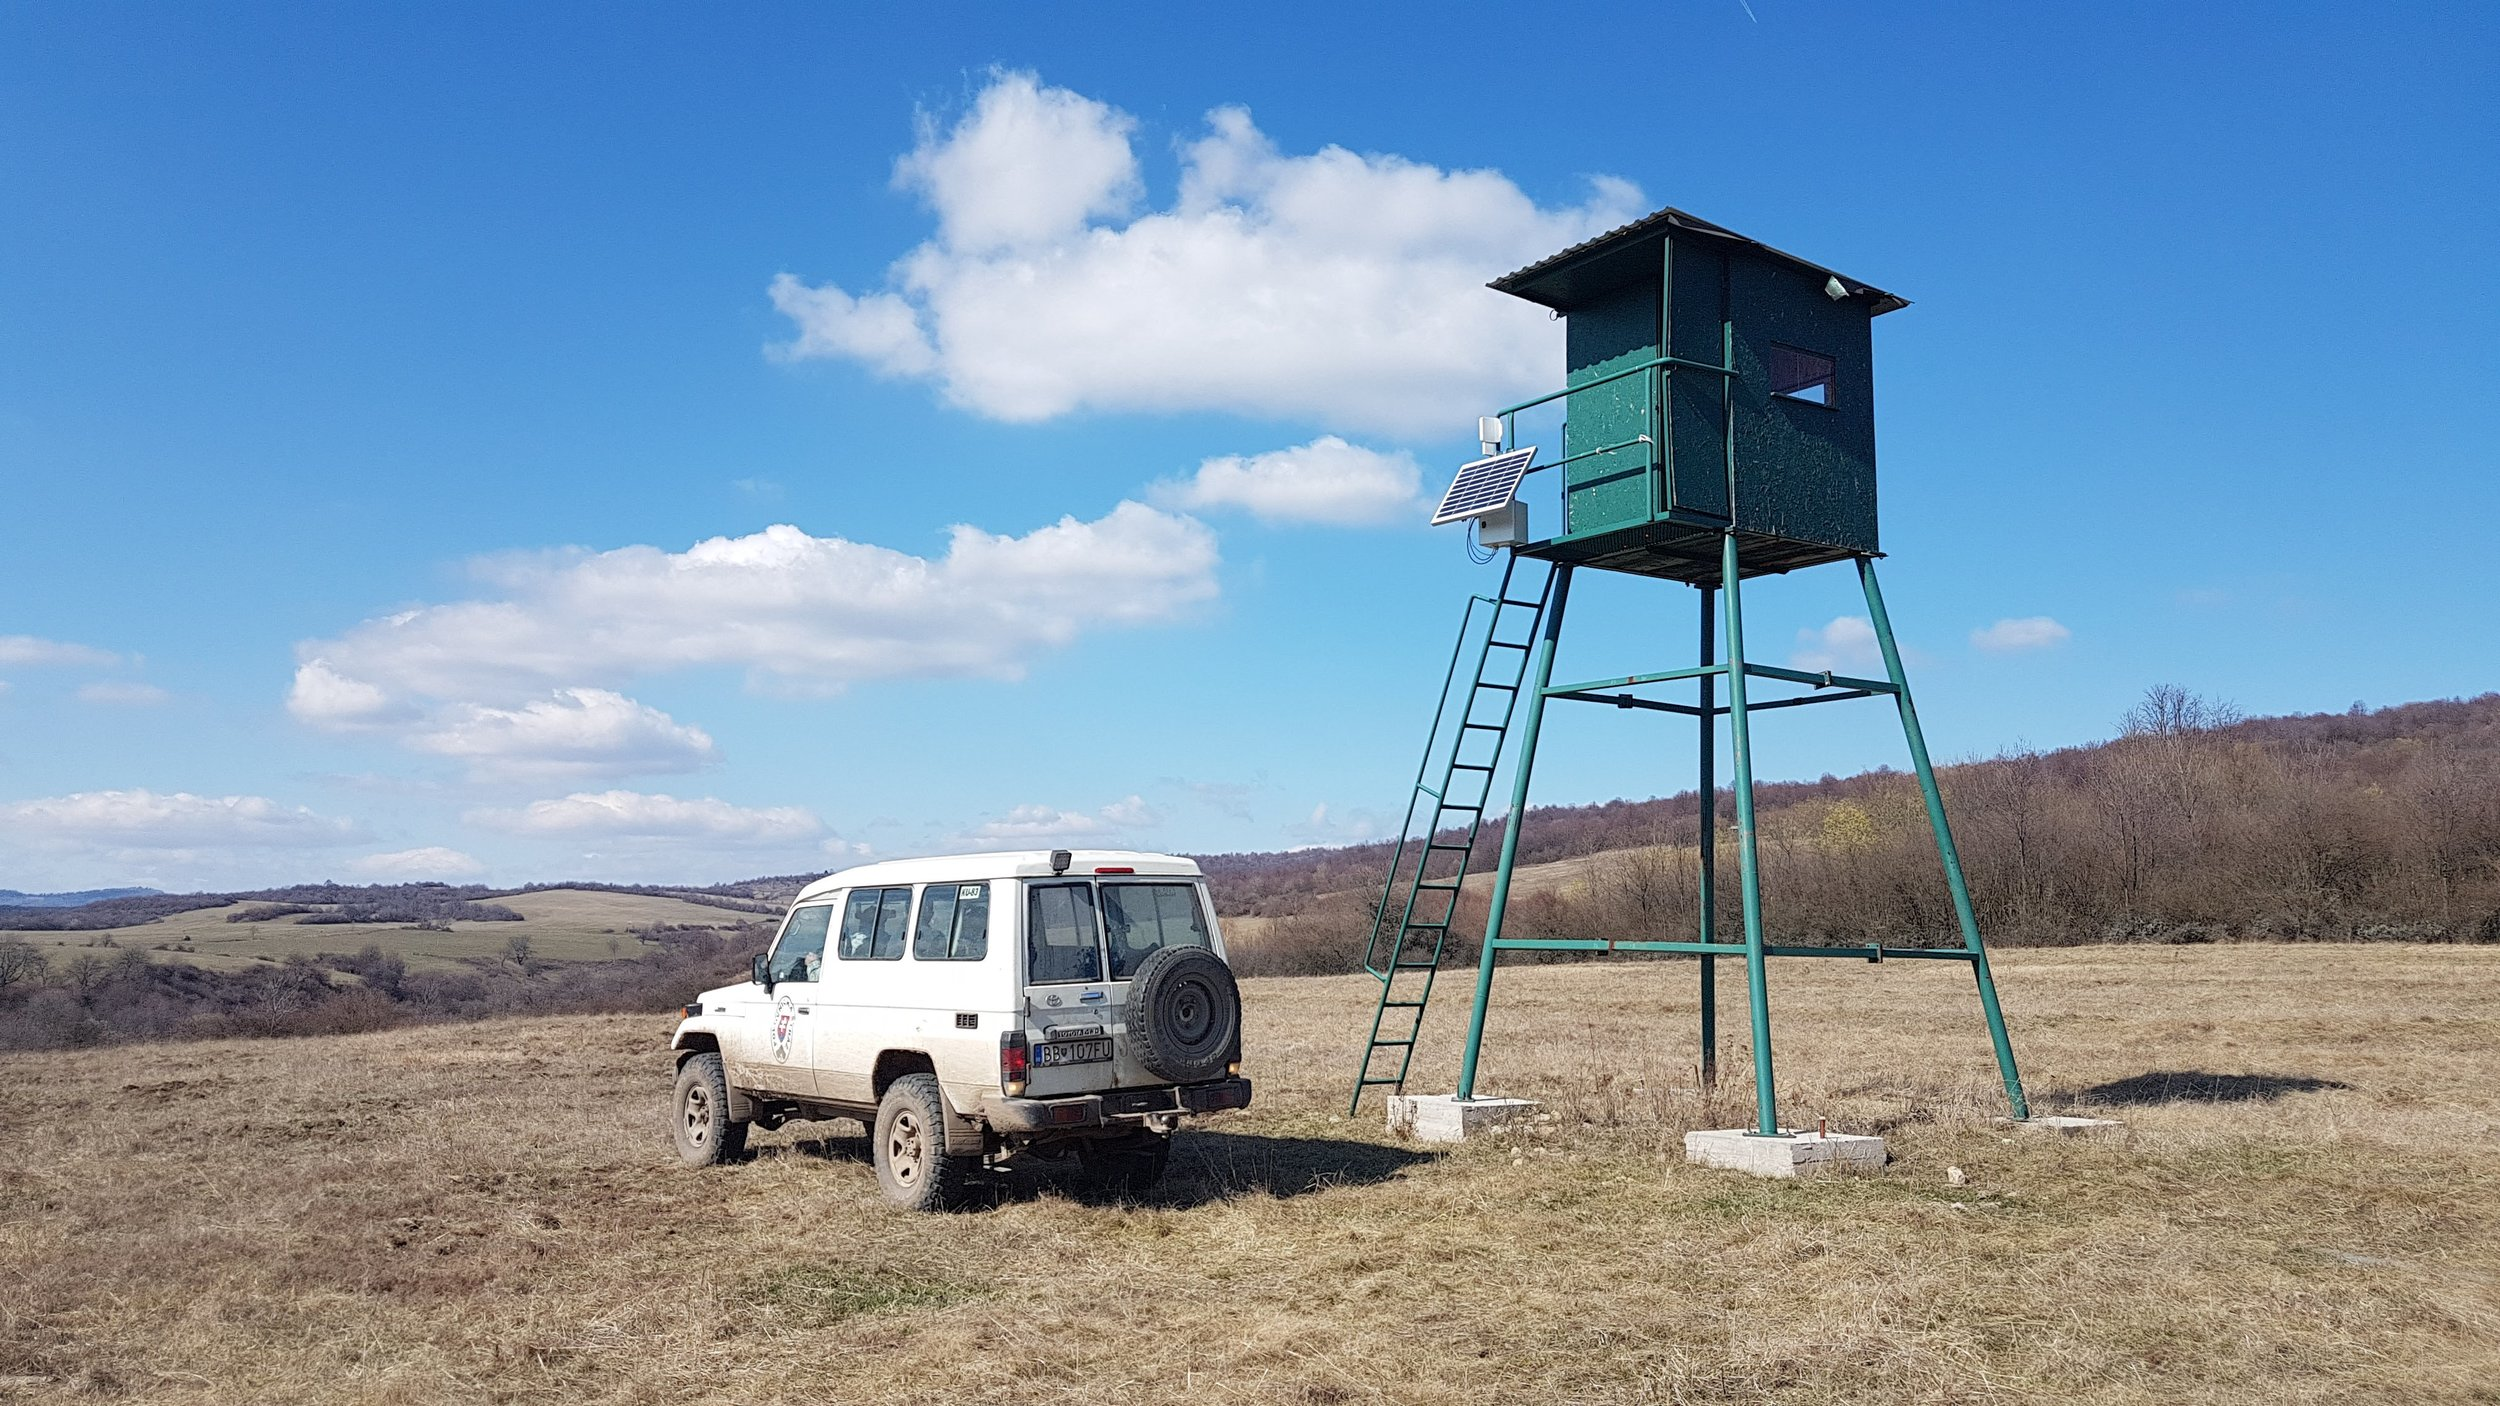 Sigfox Micro installation at a remote cattle ranch for cattle tracking and MeteoHelix weather station data. ( Photo by Andrej DobÁk  of SIMPLECELL NETWORKS SLOVAKIA, A.S..)